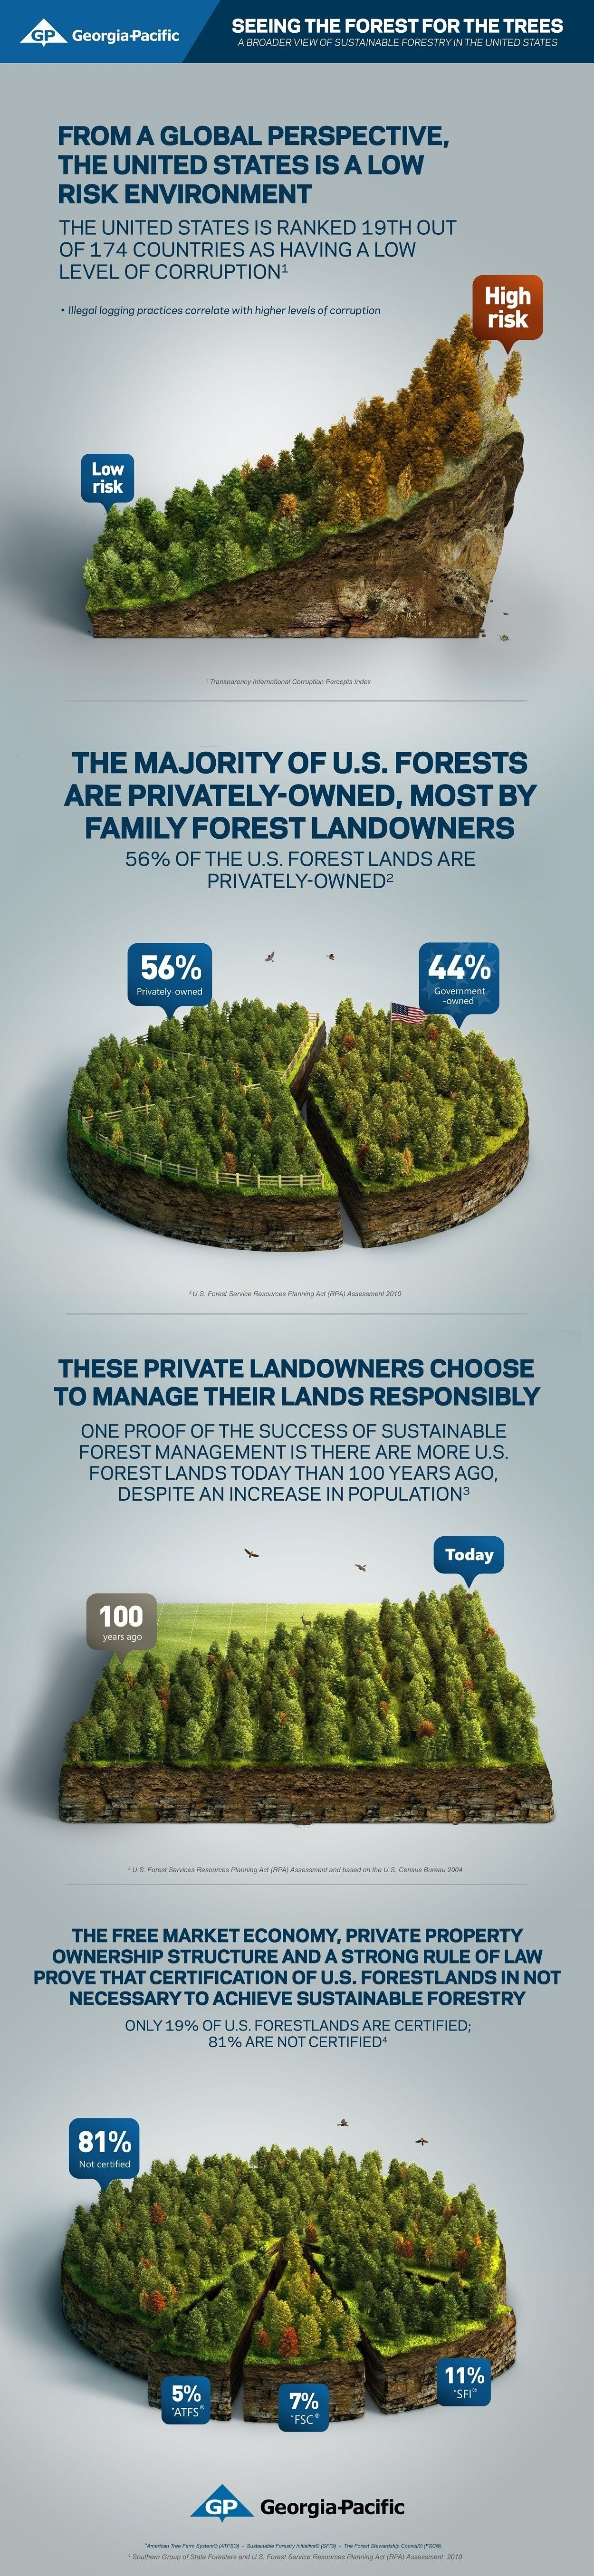 The forest for the trees in Georgia-Pacific #infographic